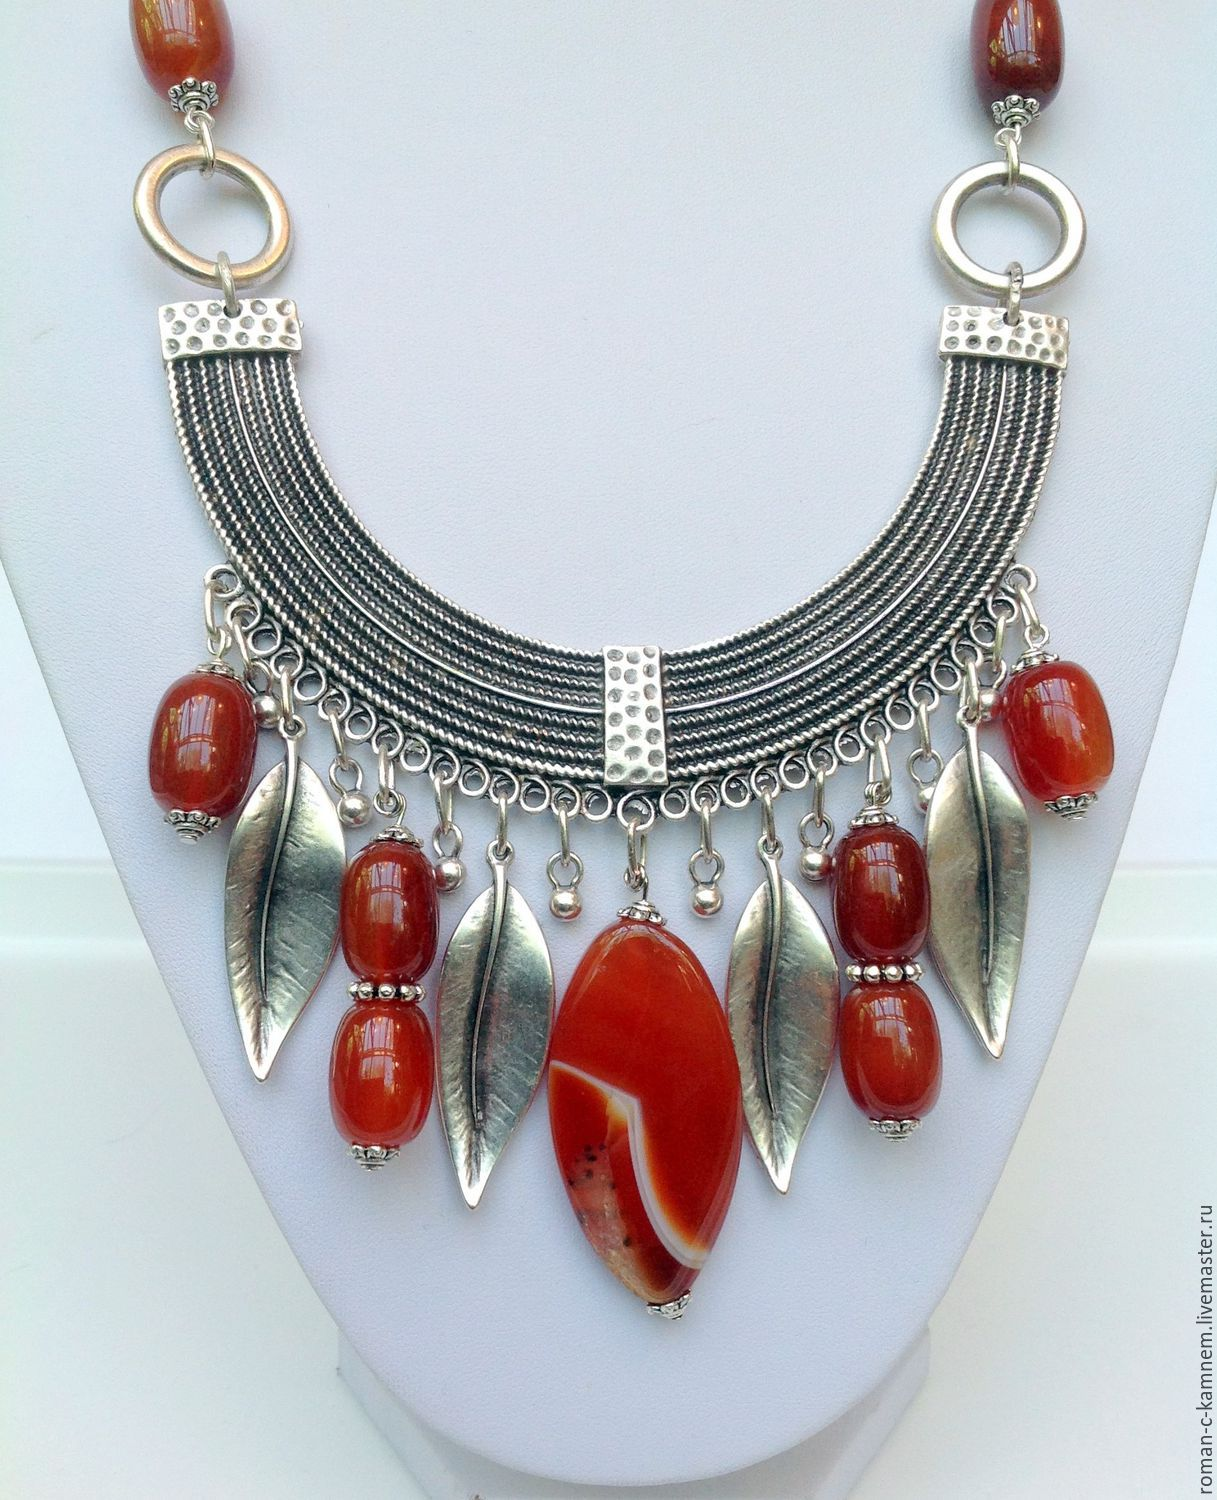 Necklace and earrings made of natural stones ethnic design Eden Gardens. Bright red-orange range.  Clothing in Bohemian style, country style, denim style.